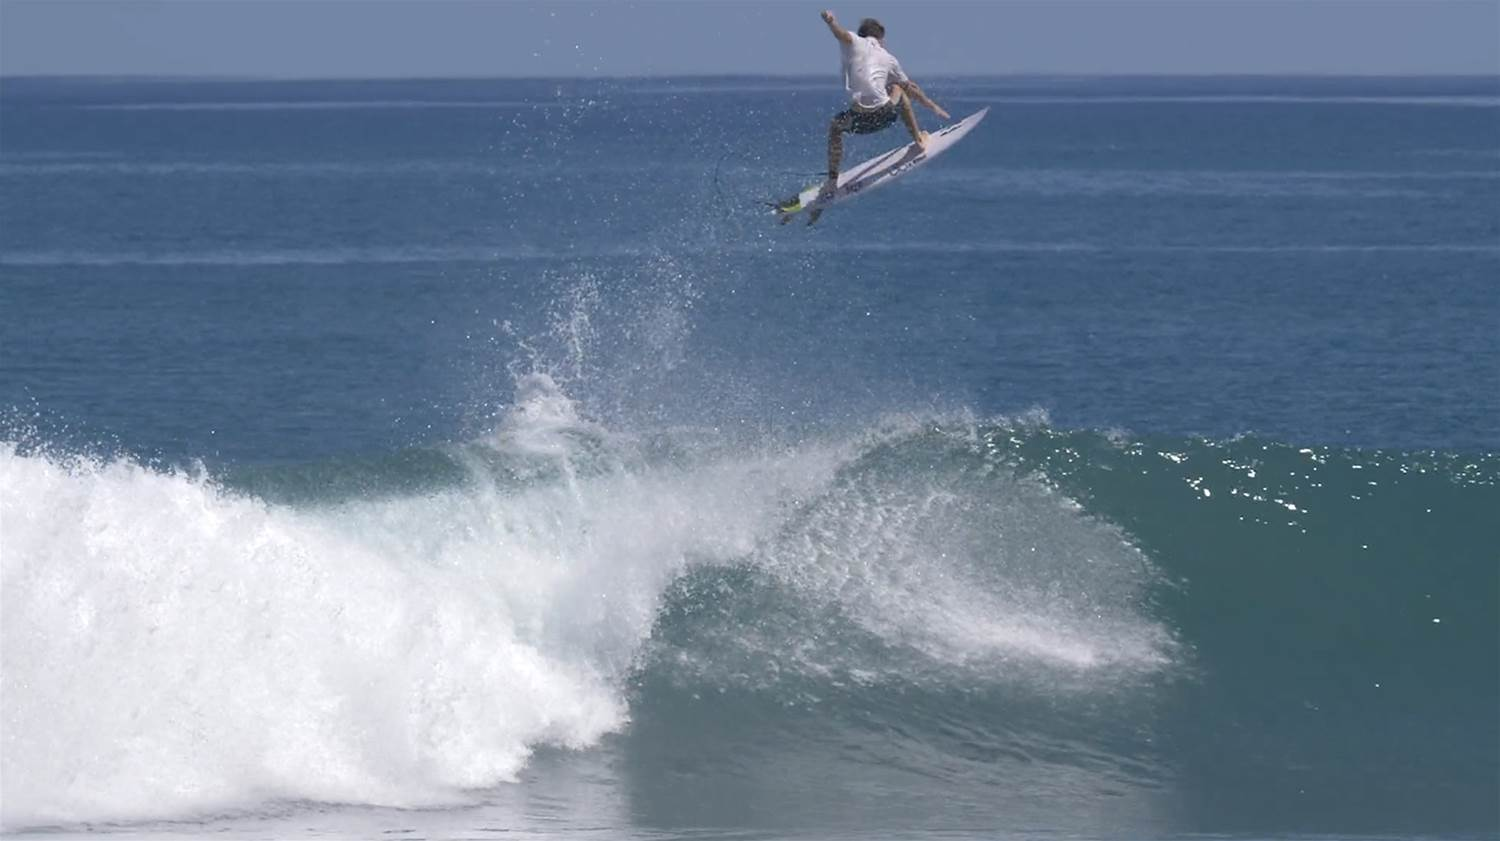 His Hawaiian Airs Melted the Internet, Now here's some more Reef Heazlewood.